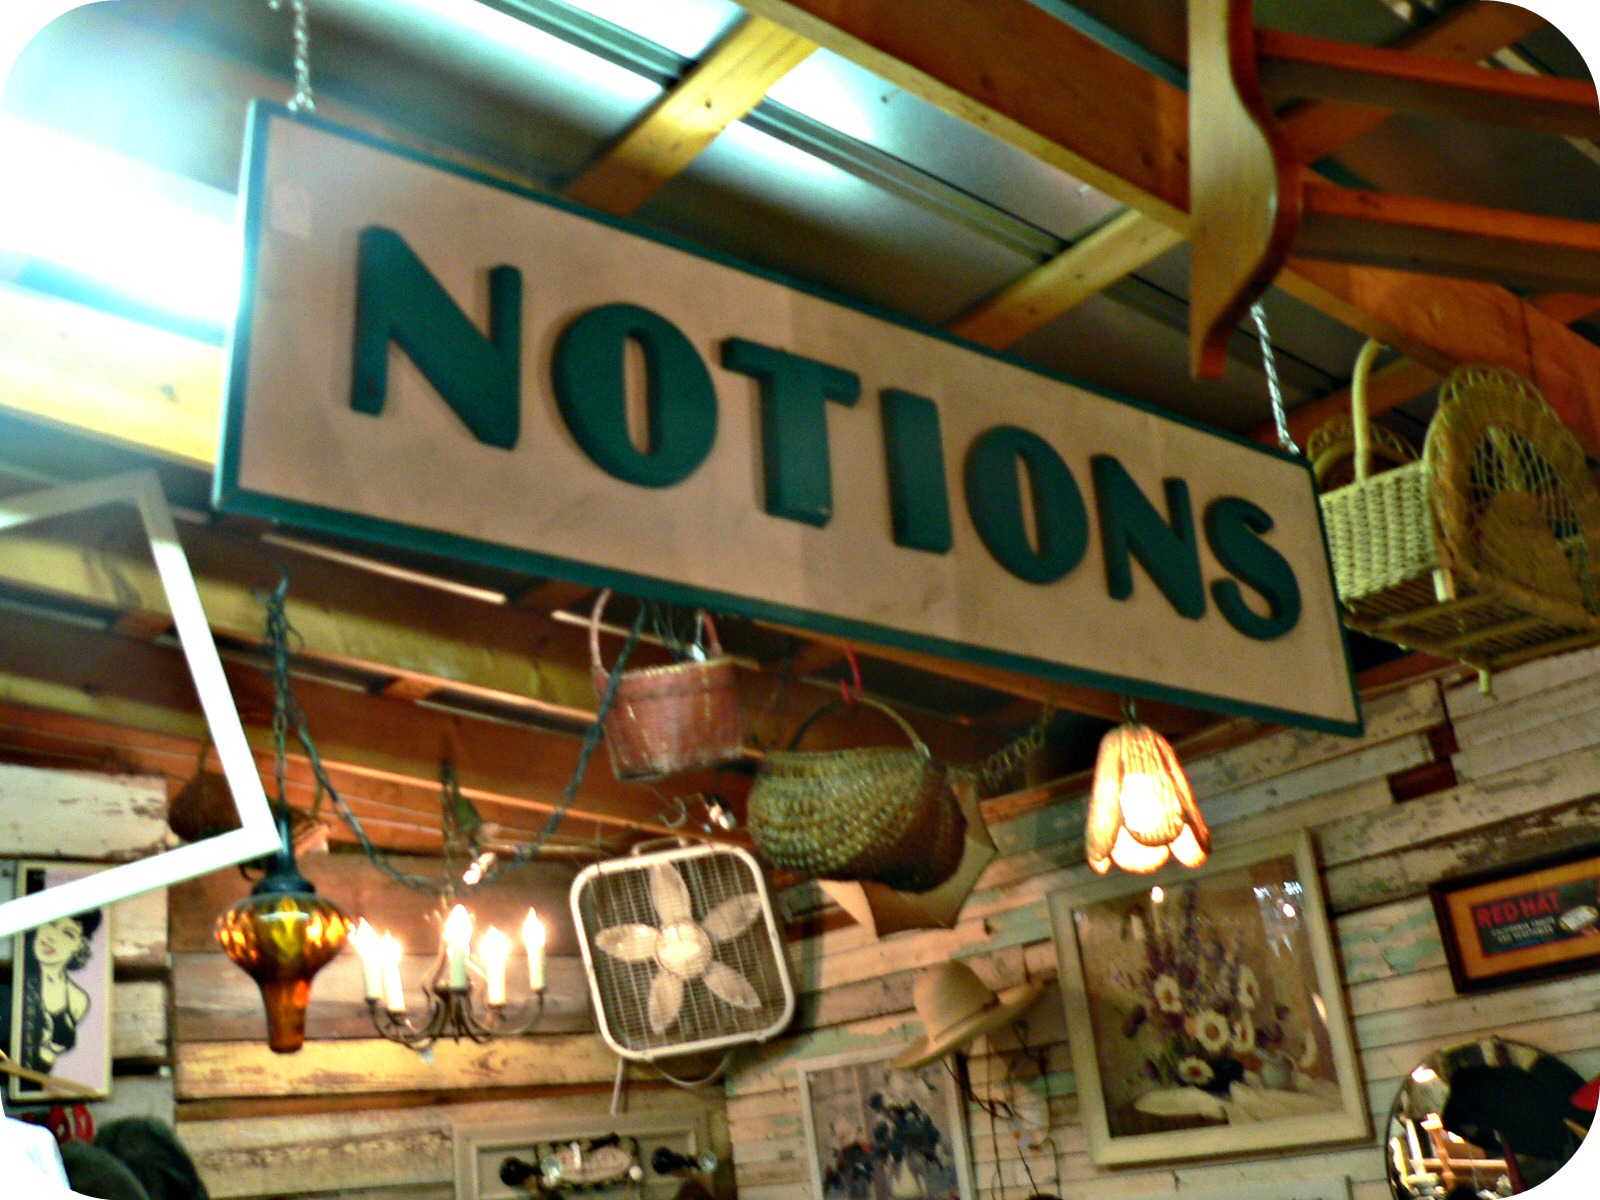 notions Thrifting in Raleigh